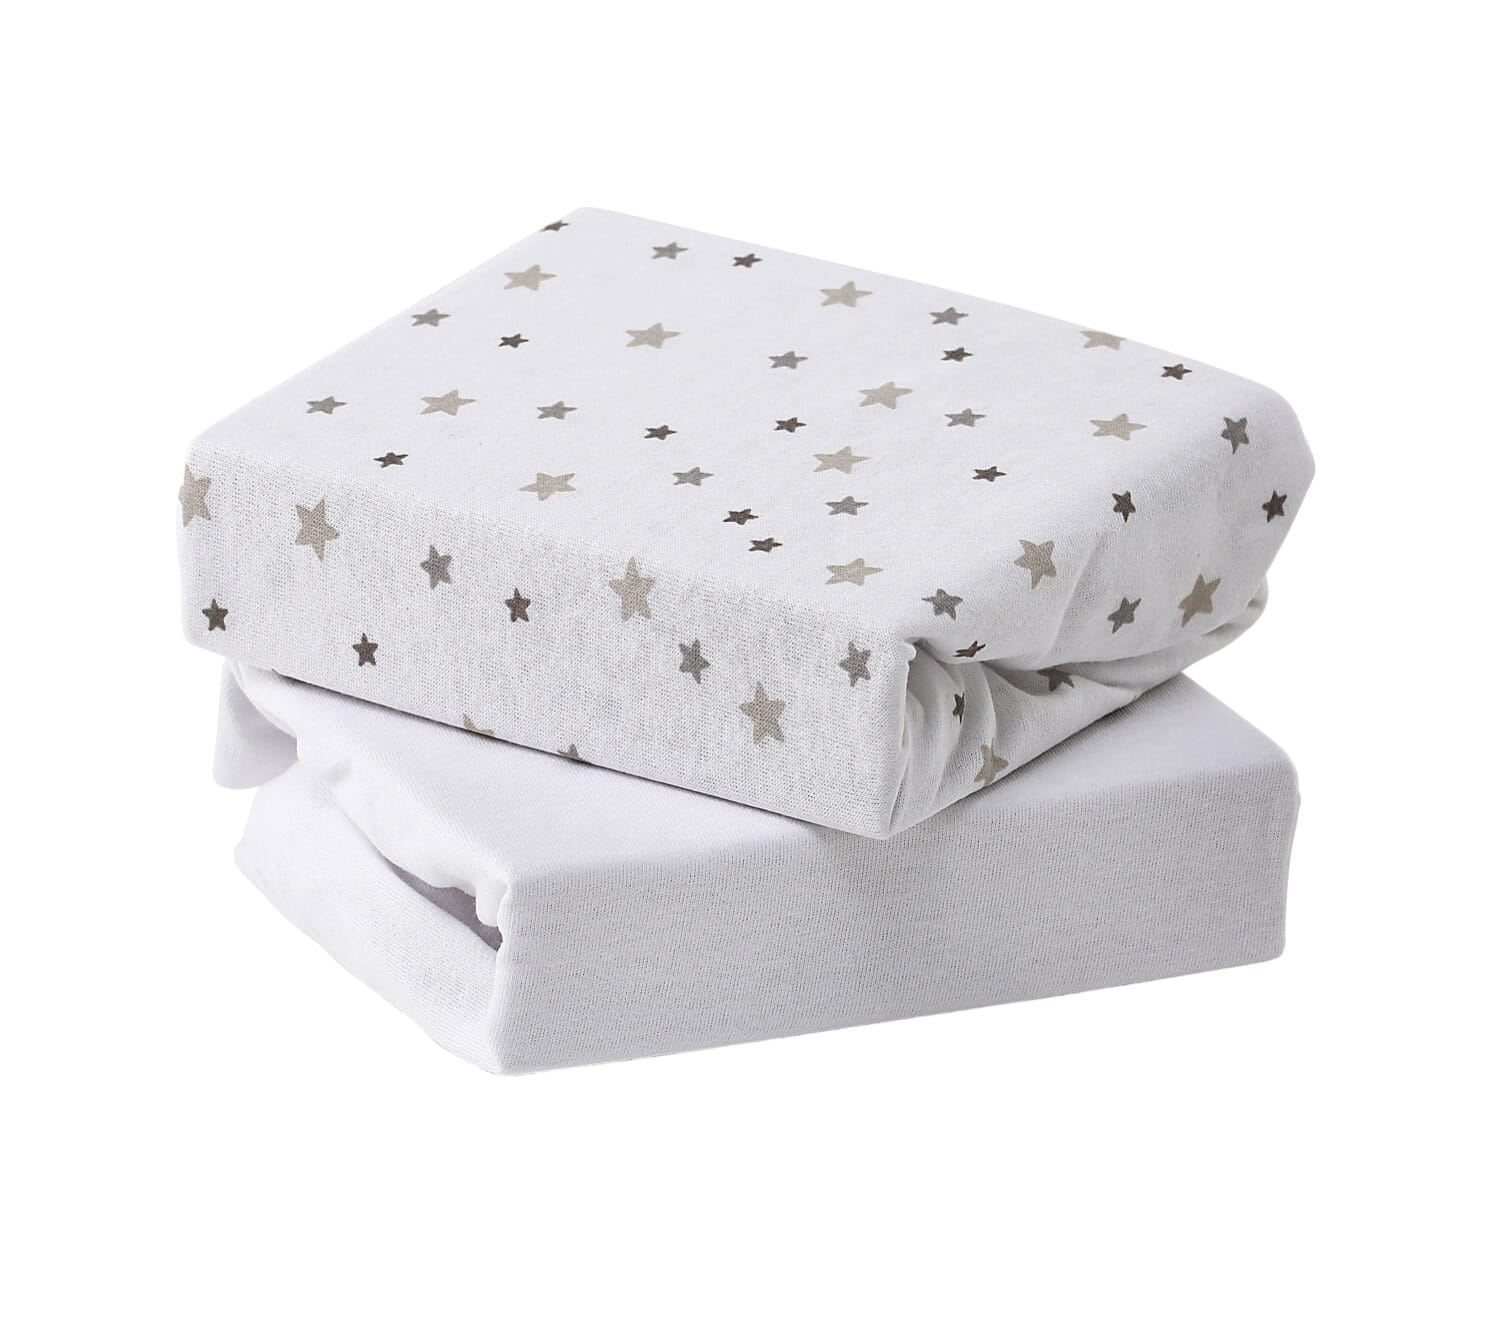 2 Pack Cot Bed Fitted Sheet Jersey